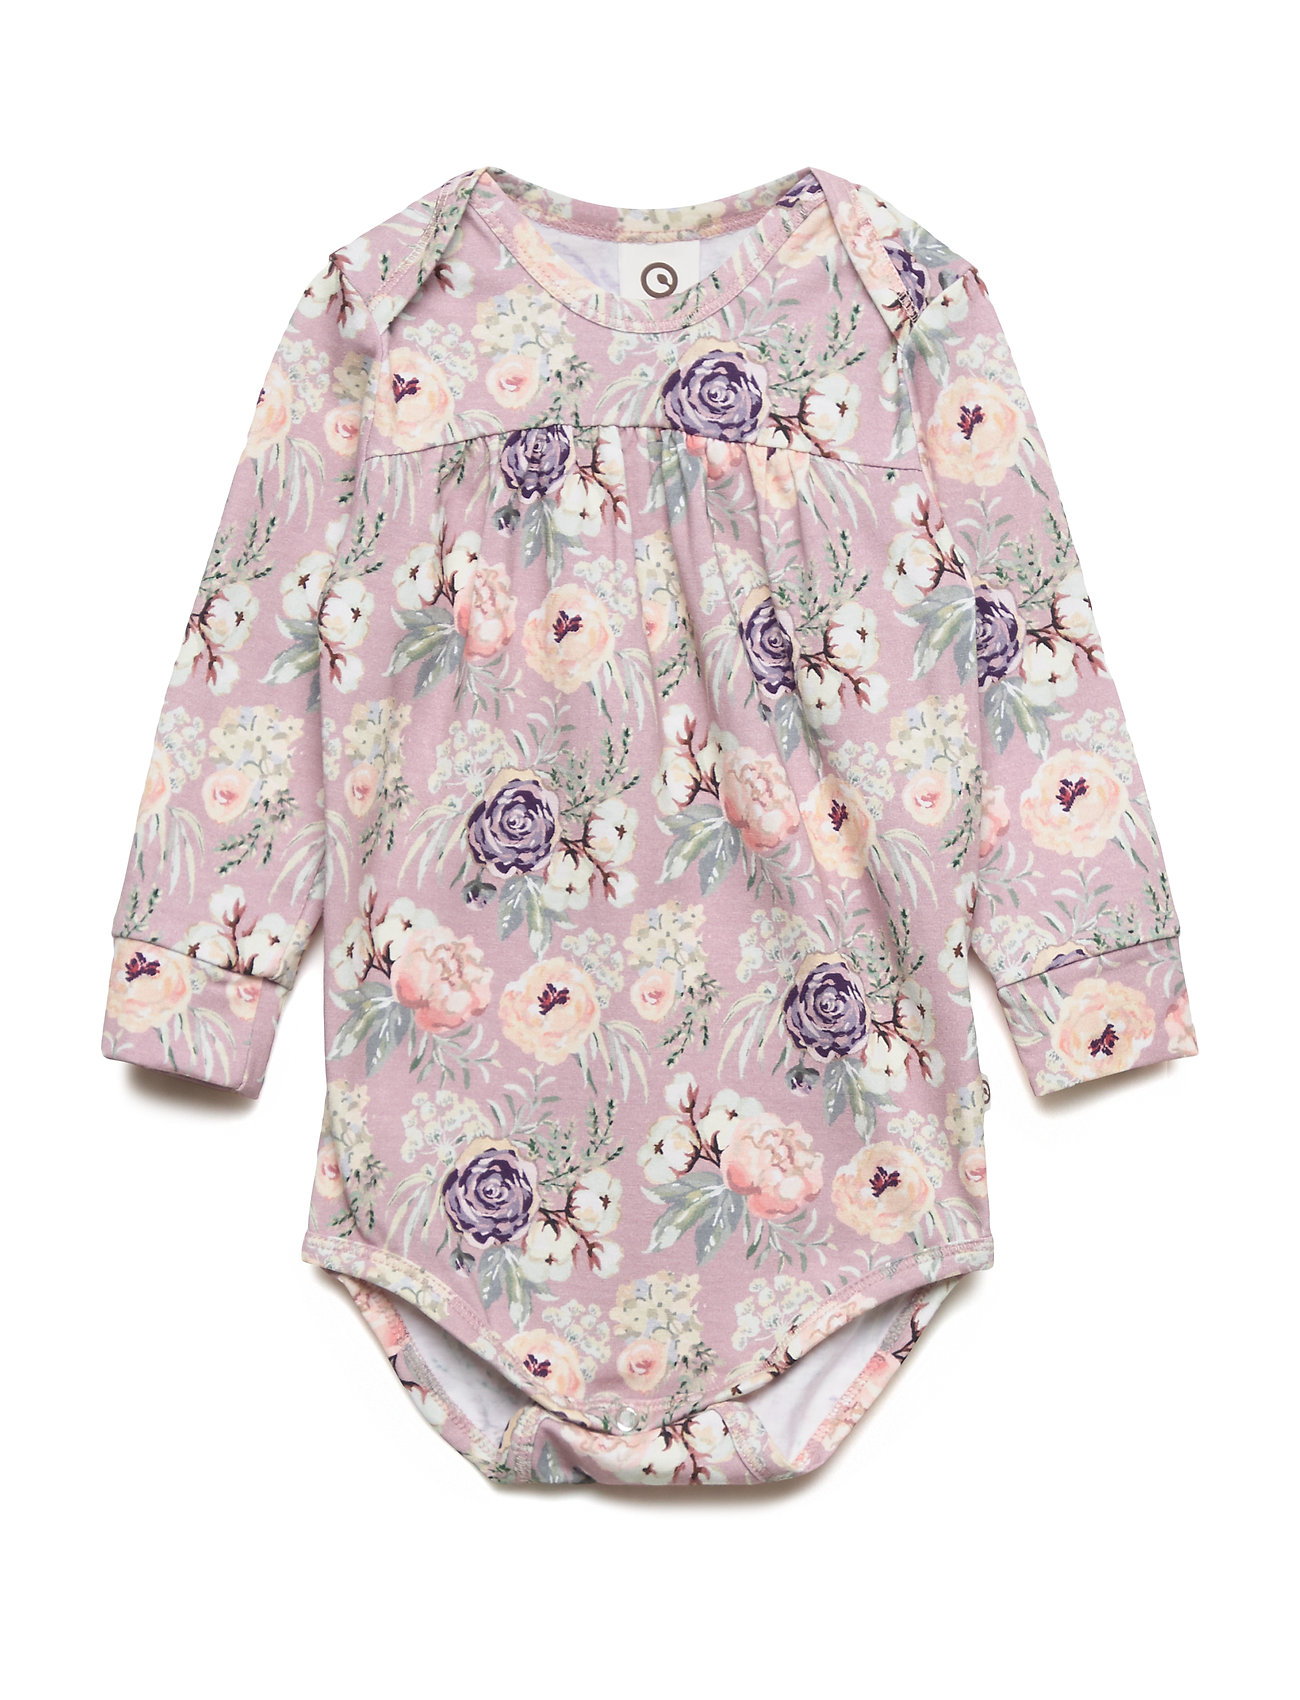 Müsli by Green Cotton Spicy bloom body - ROSE